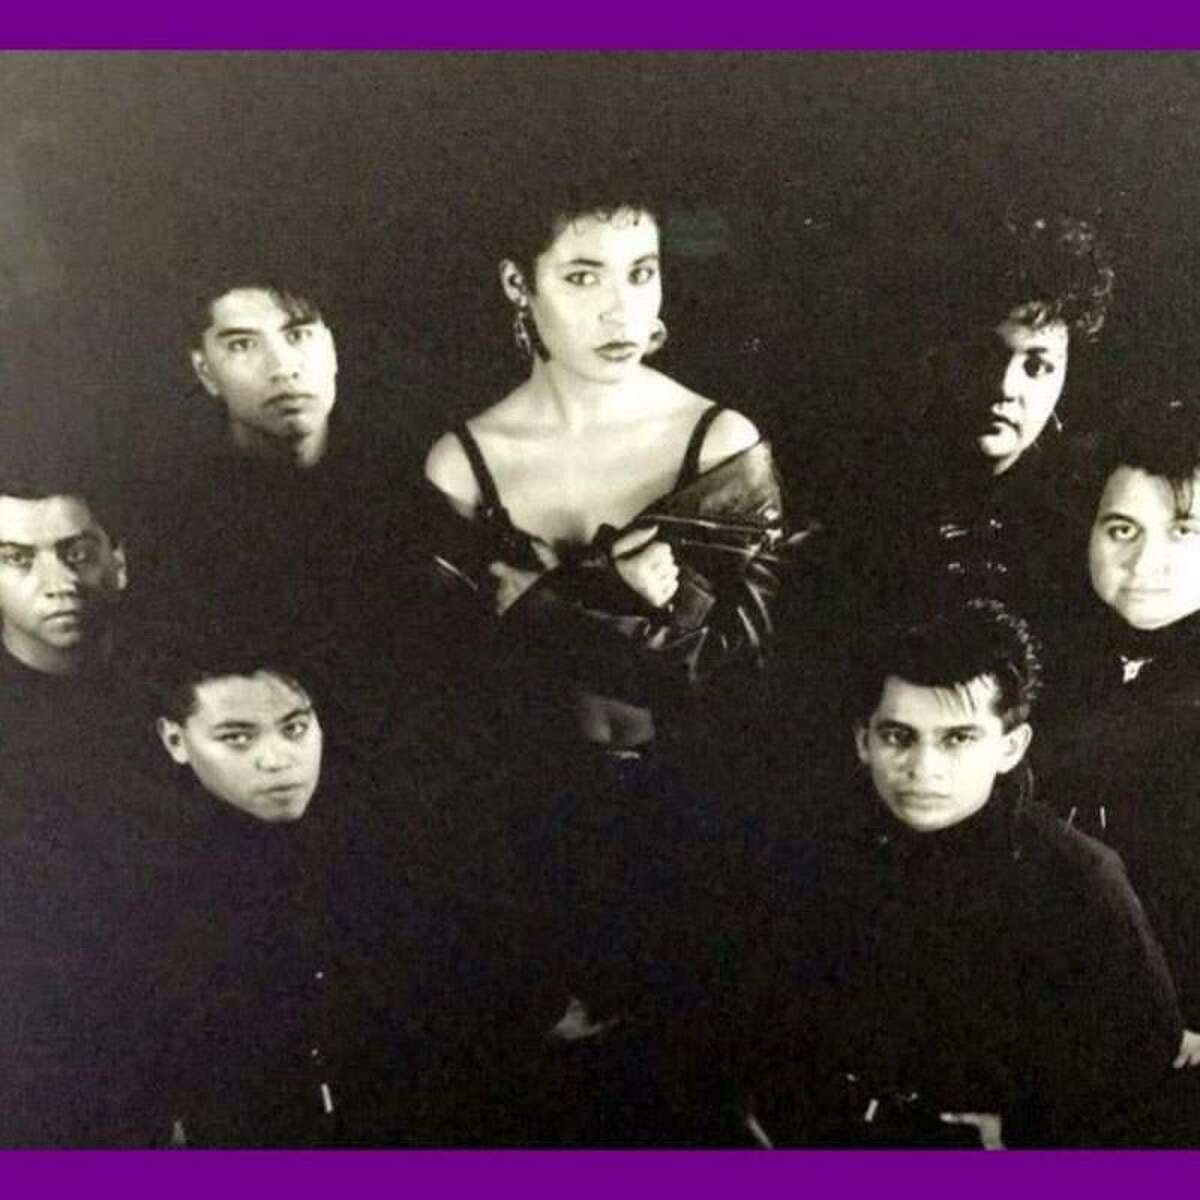 Photos from Pete Astudillo's personal collection show the Laredo native performing with late Tejano queen Selena.